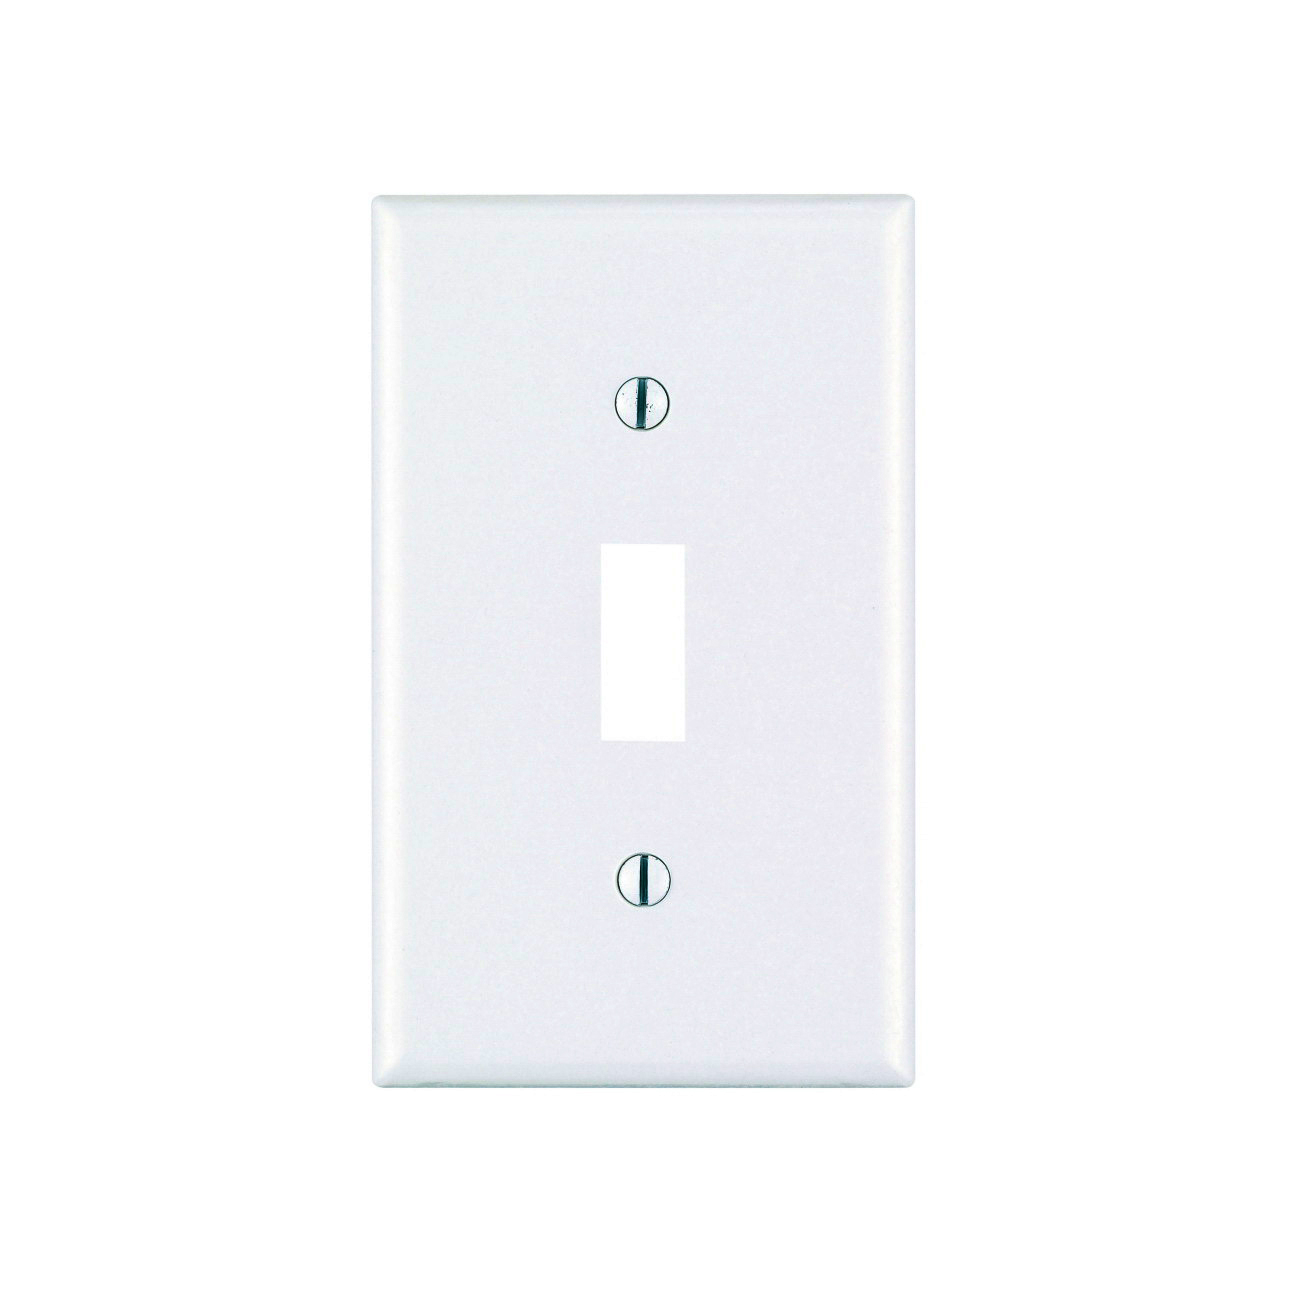 Leviton M56-78001-TMP 1-Toggle Standard Size Wall Plate, 1 Gang, 4-1/2 in L X 2-3/4 in W 0.22 in T, Light Almond